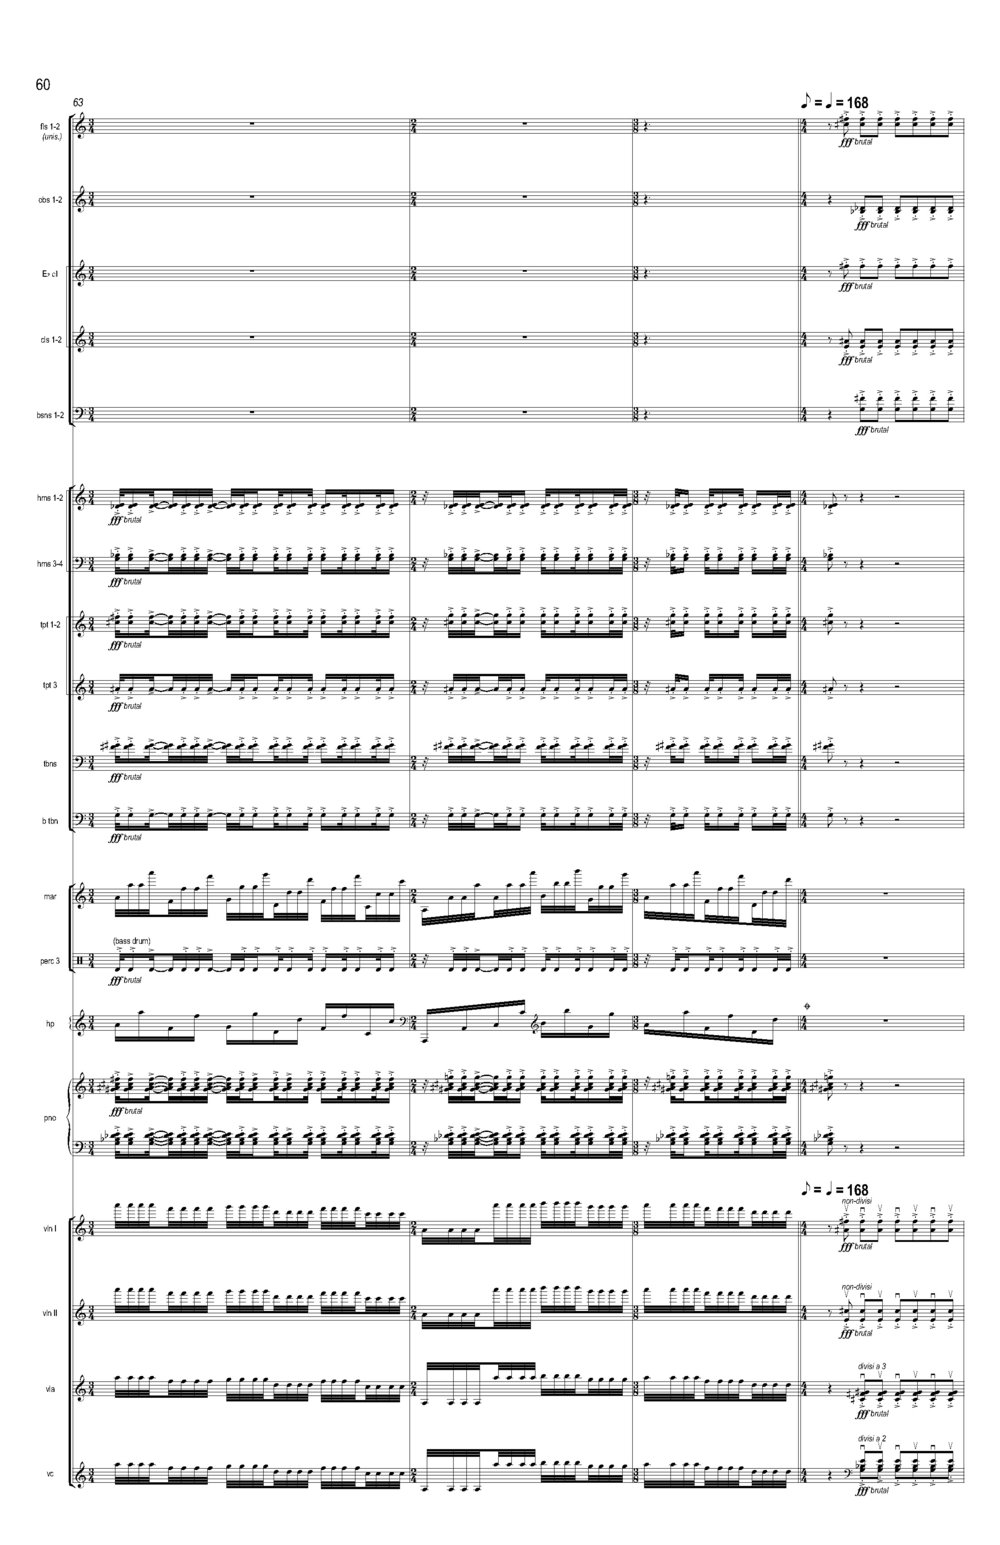 Ciach_Collective Uncommon REVISED_Full Score (Feb 2017)_Seite_66.jpg